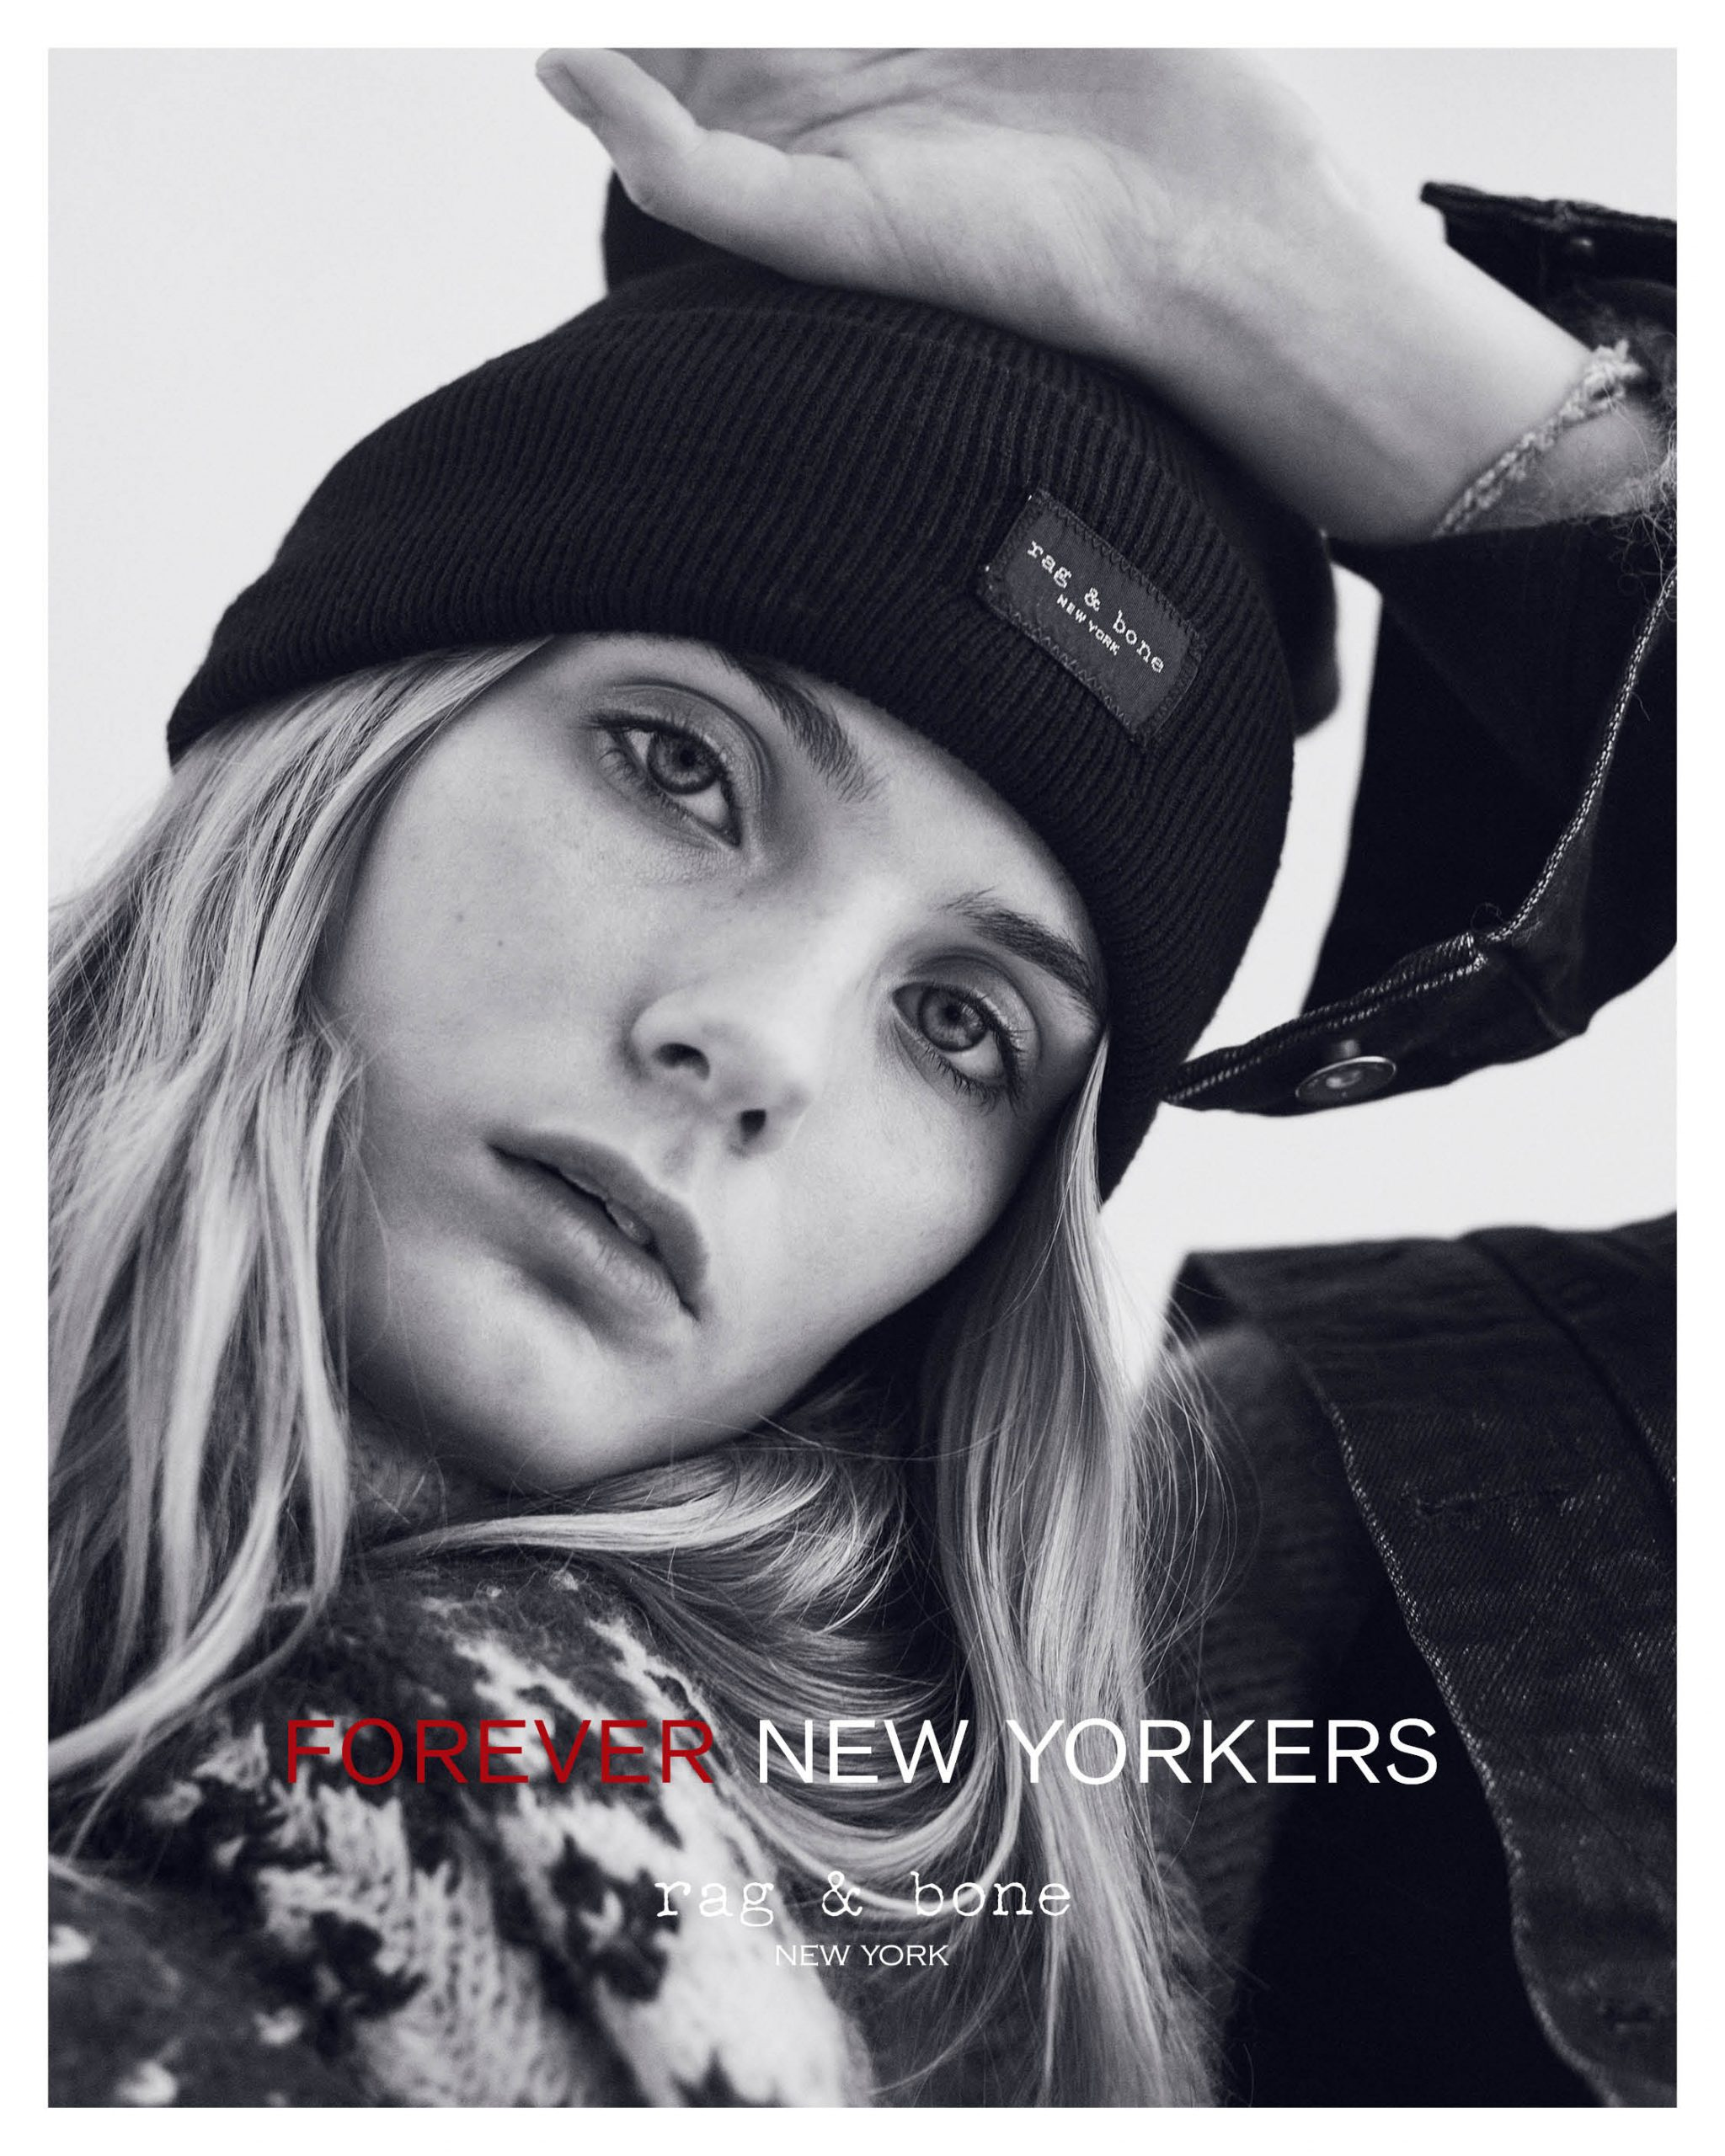 Rag & Bone 'Forever New Yorkers' Holiday 2020 Ad Campaign Film & Photos